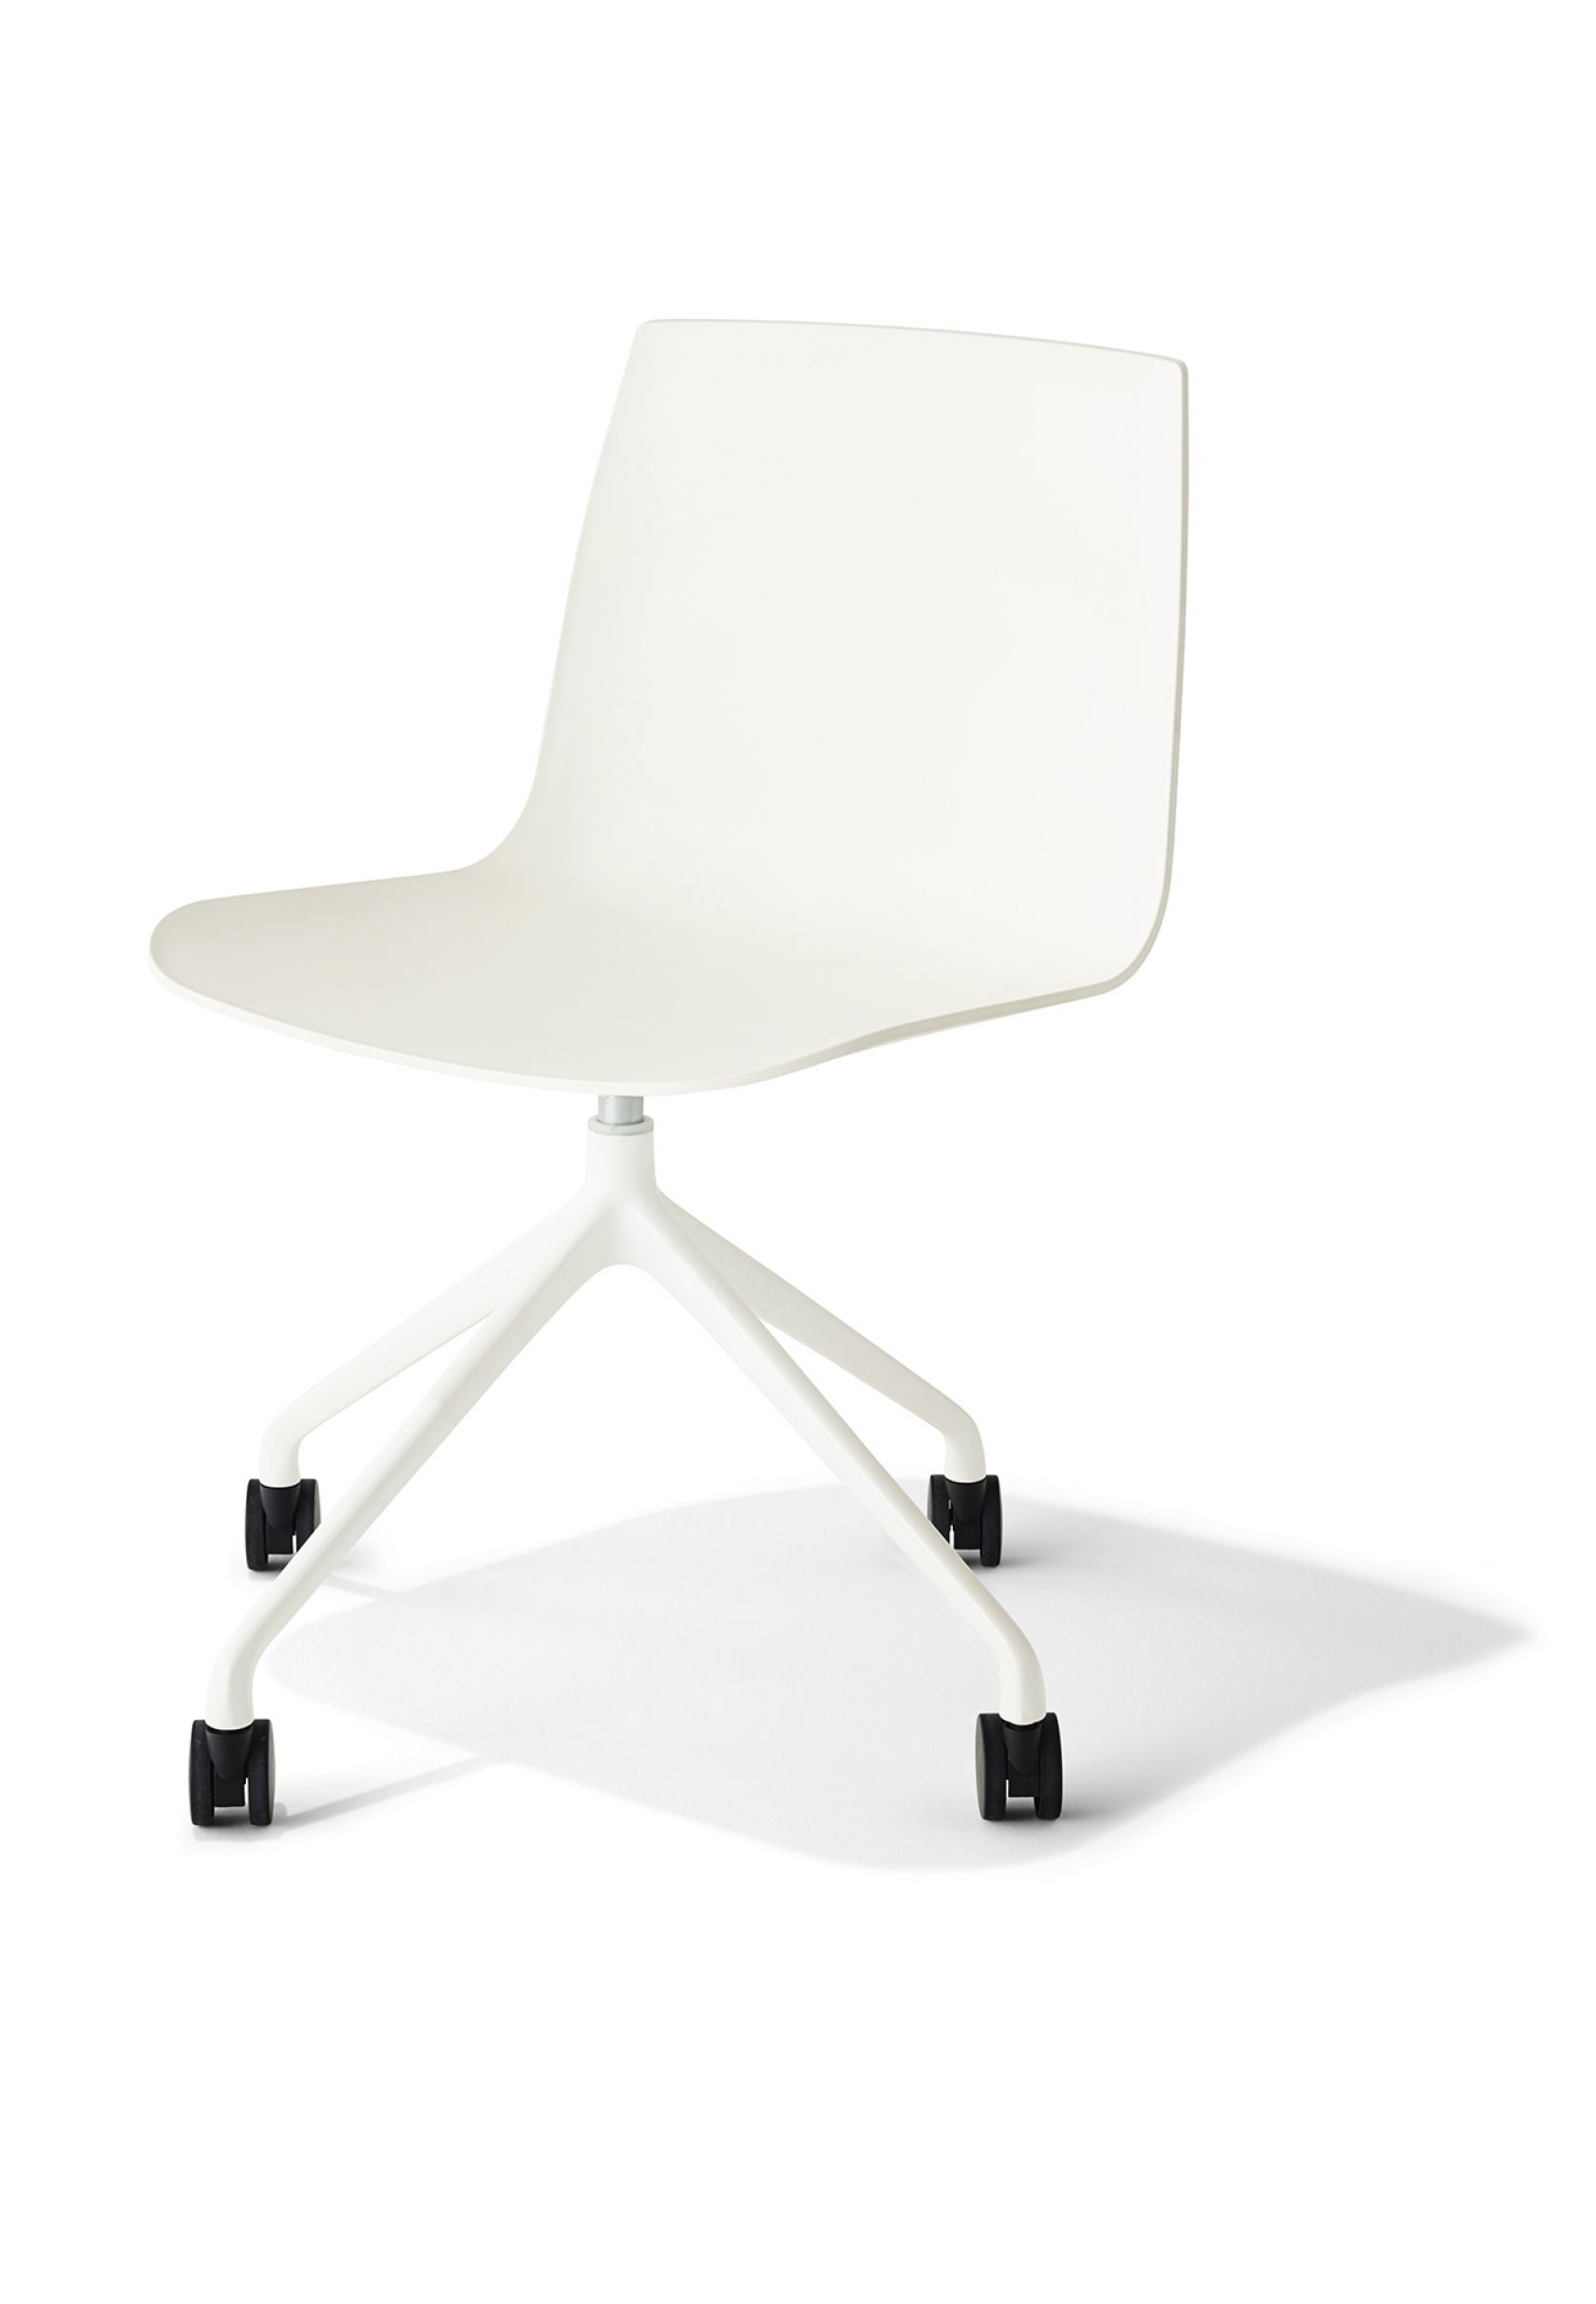 MR Chair white 4 star base